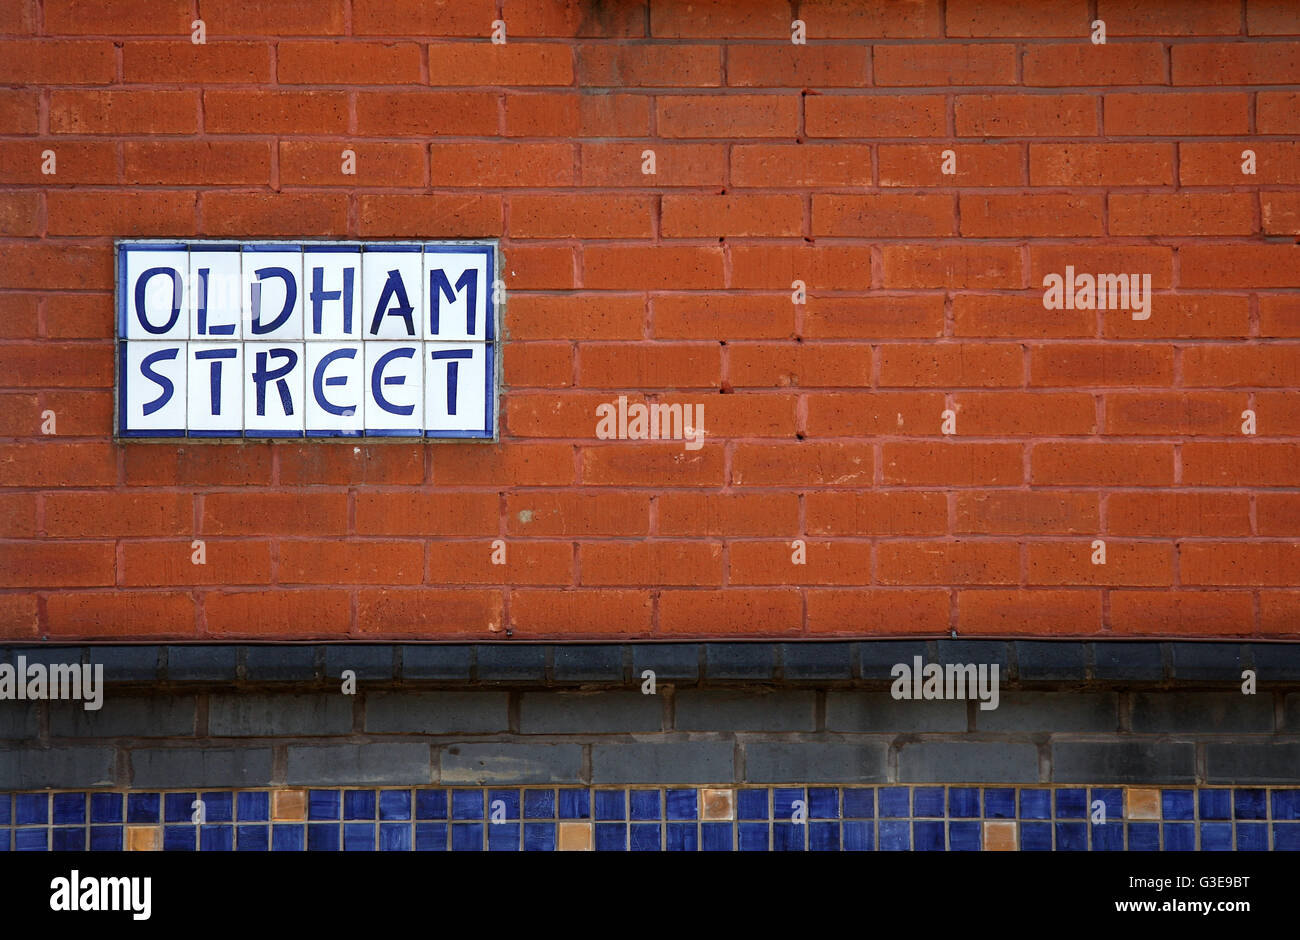 Oldham Street in the Northern Quarter of Manchester - Stock Image